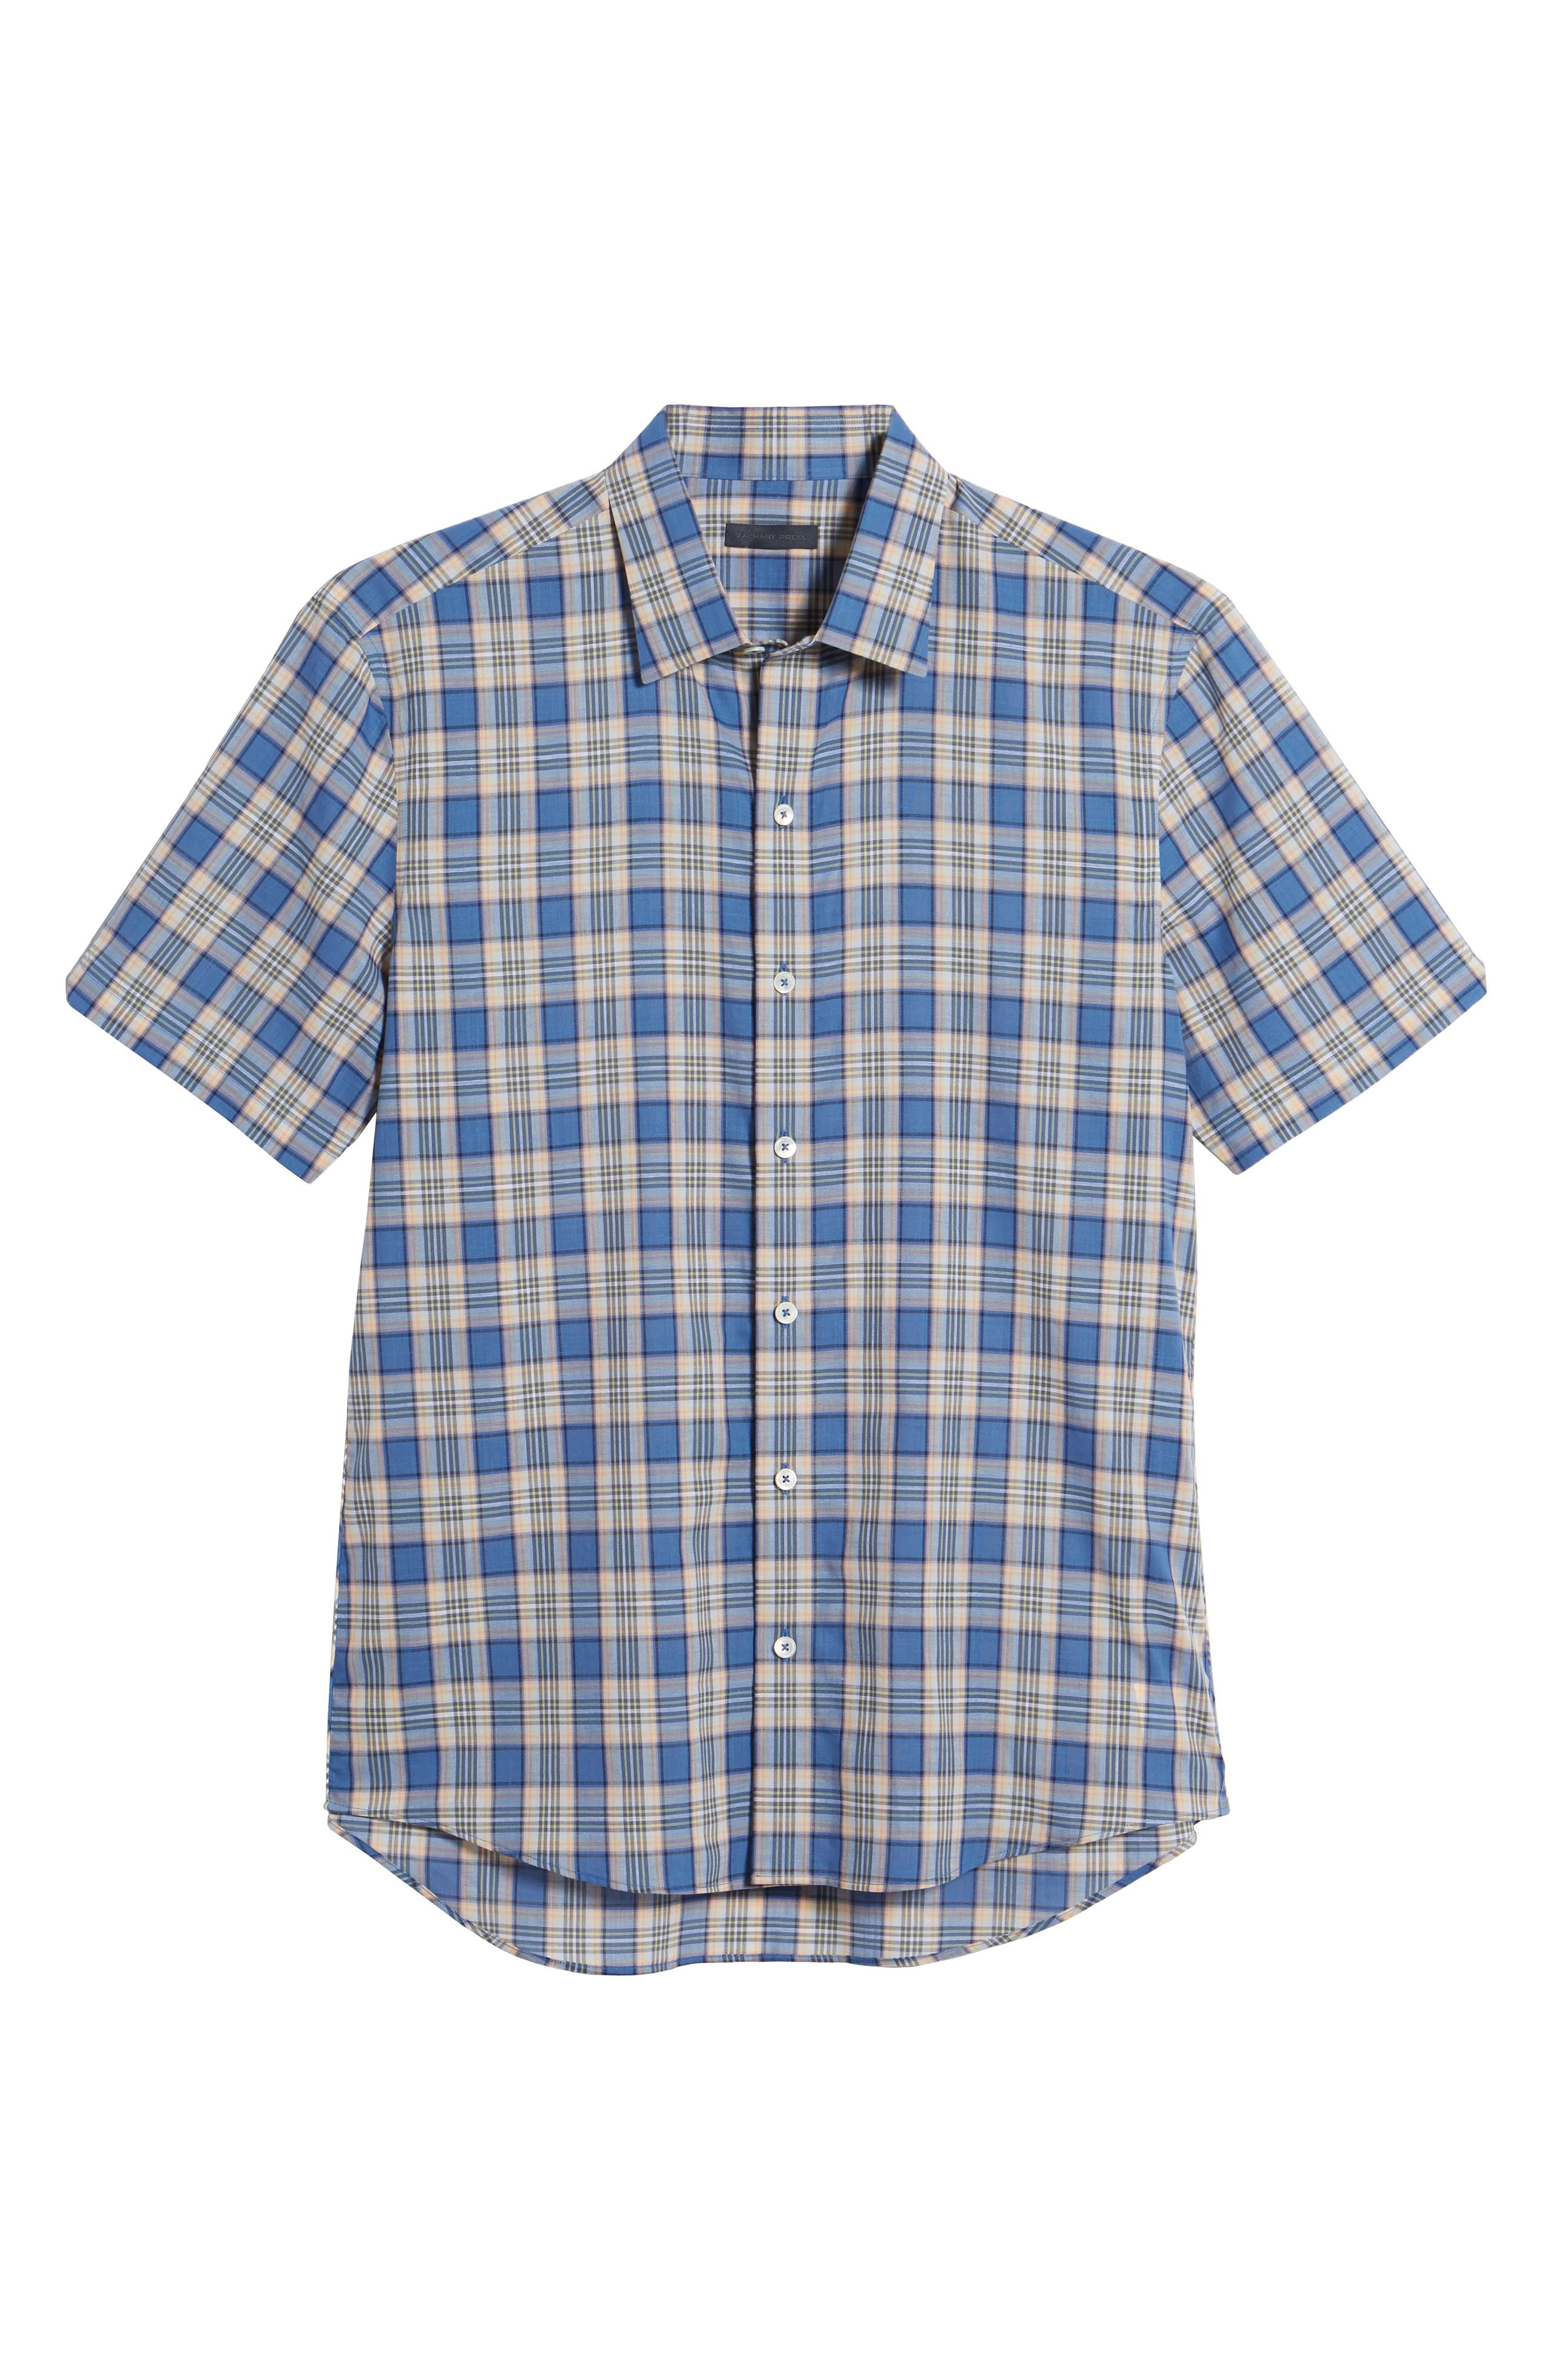 Carter Plaid Sport Shirt,                             Alternate thumbnail 6, color,                             400